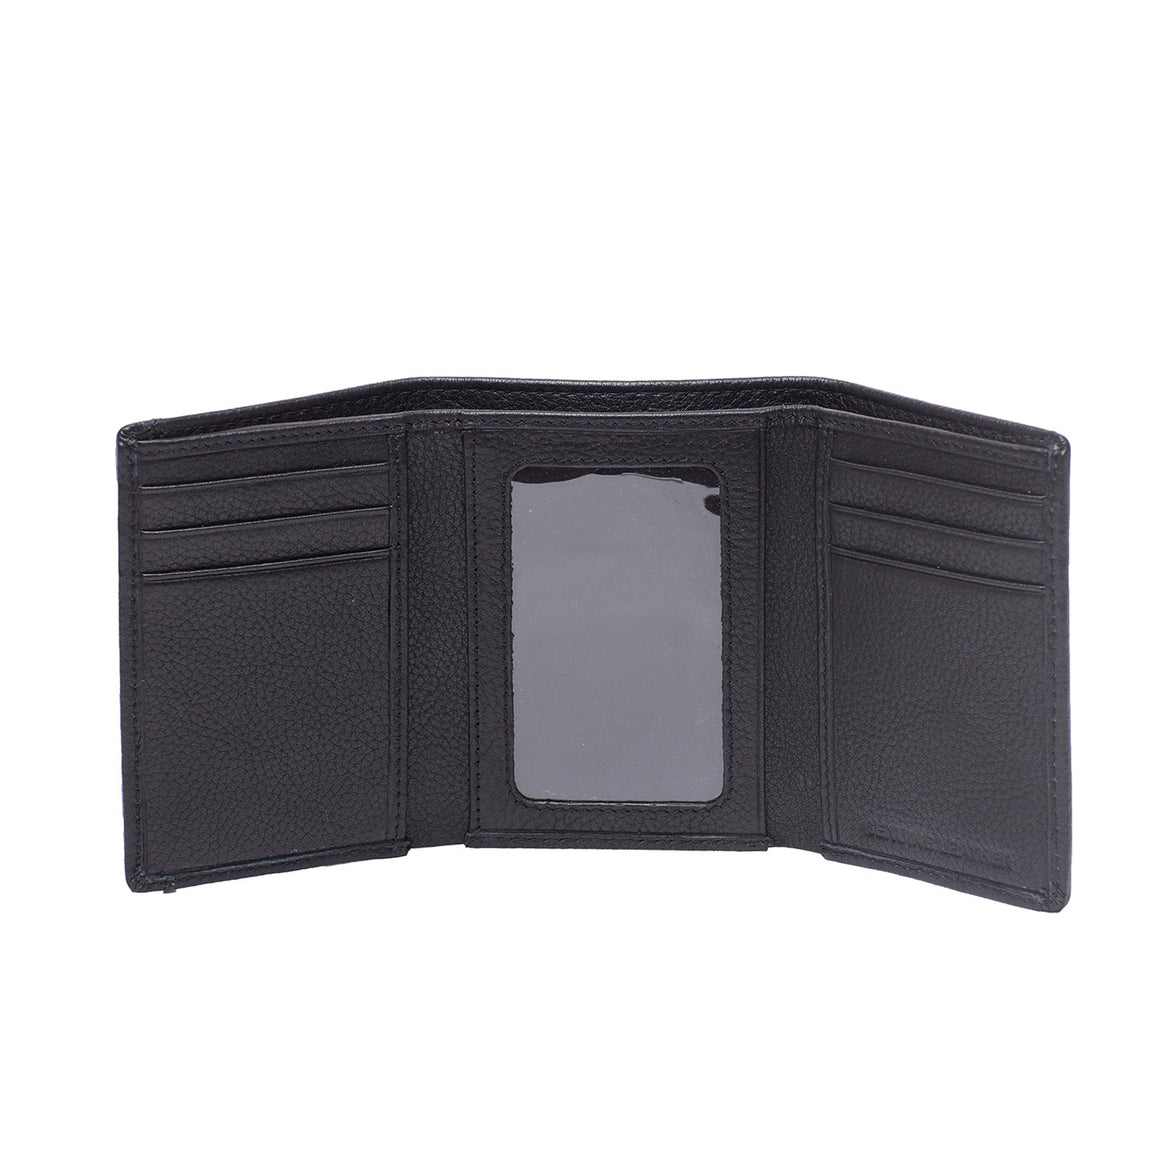 WT 0034 - TOHL BOCCHI MEN'S WALLET - CHARCOAL BLACK